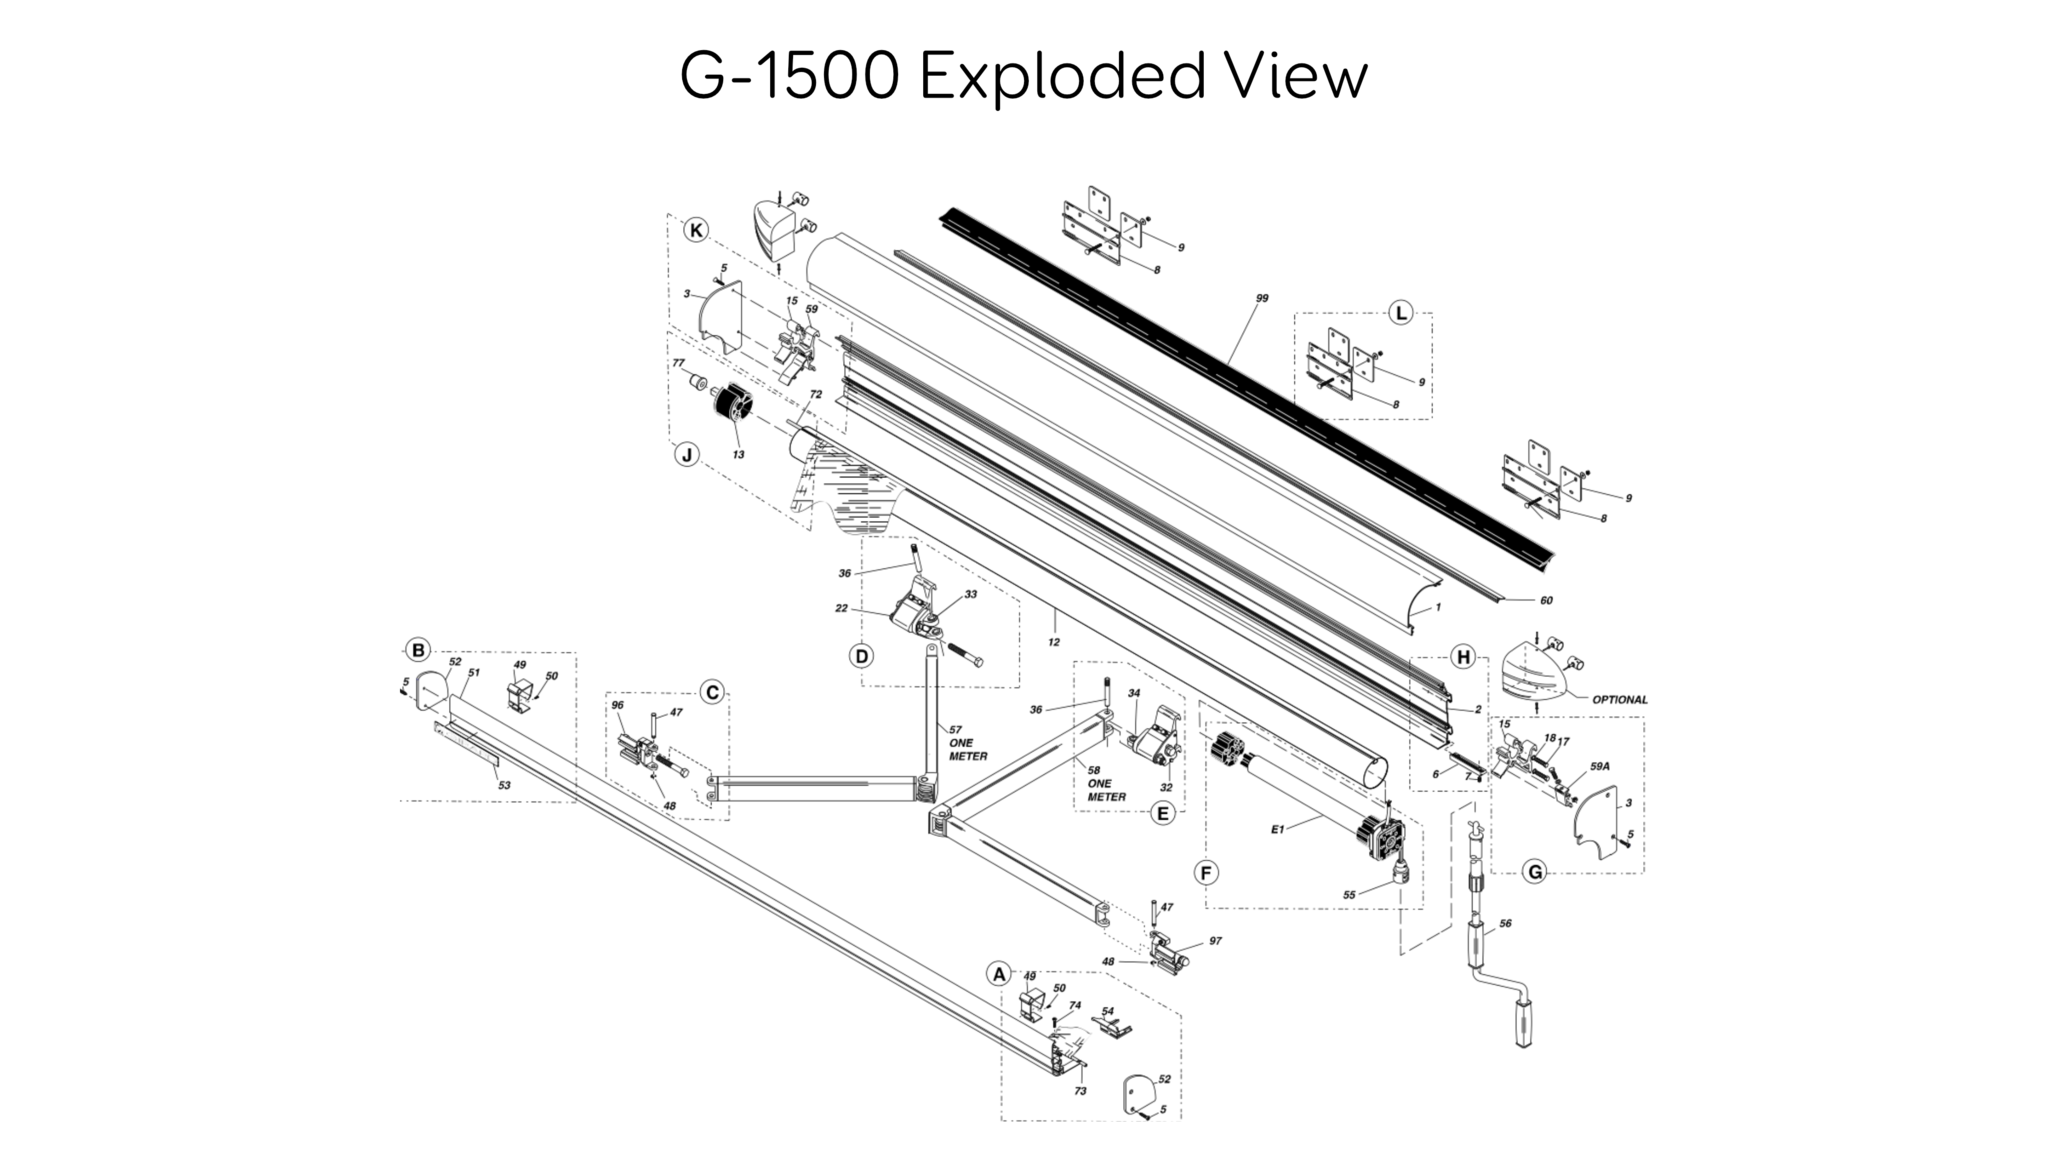 G 1500 diagram girard rv awnings girard systems g 1500 diagram pooptronica Image collections